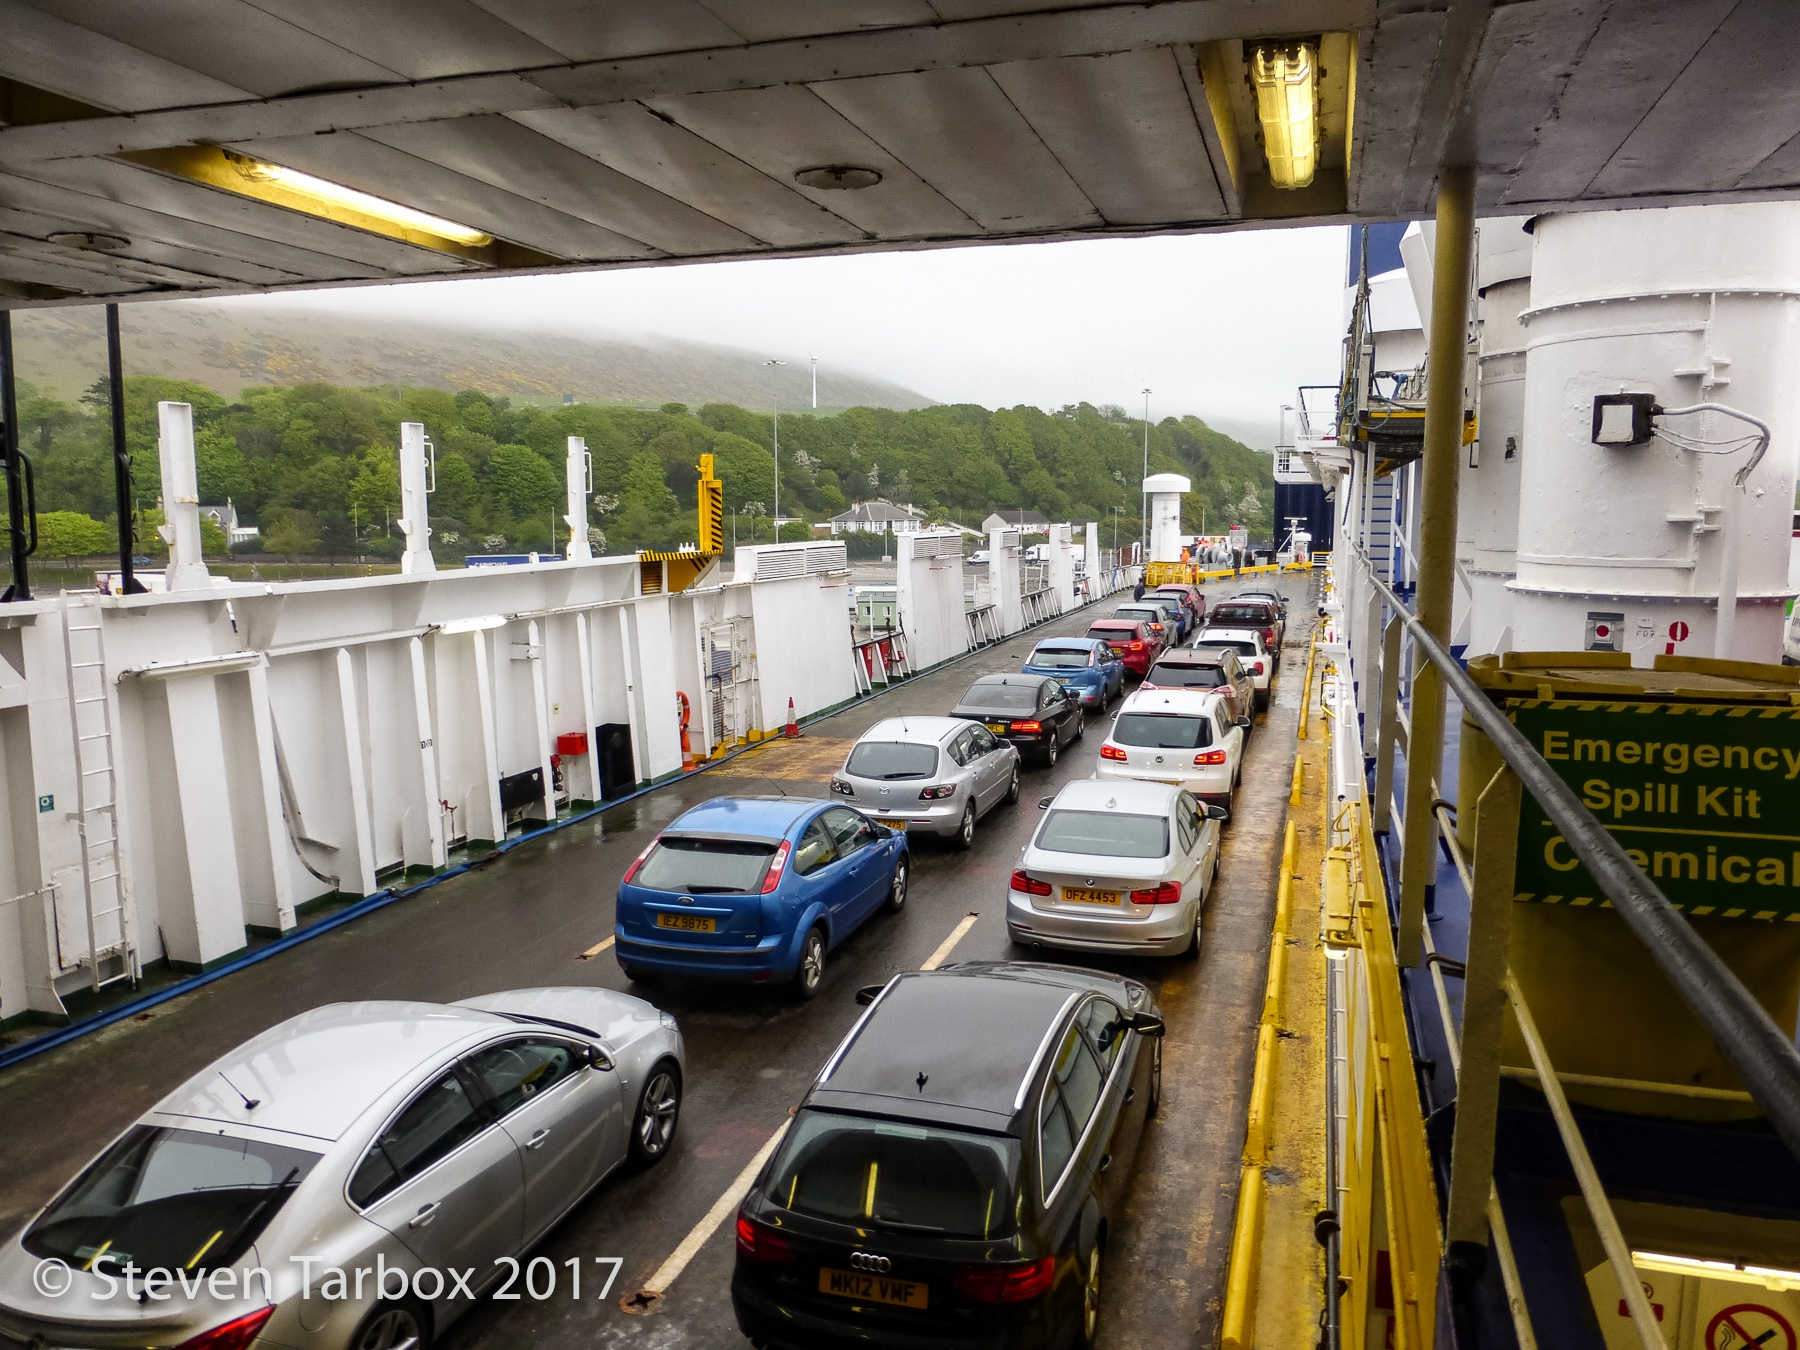 View of the cars on the upper vehicle deck - normally these decks would only contain freight. © Steven Tarbox